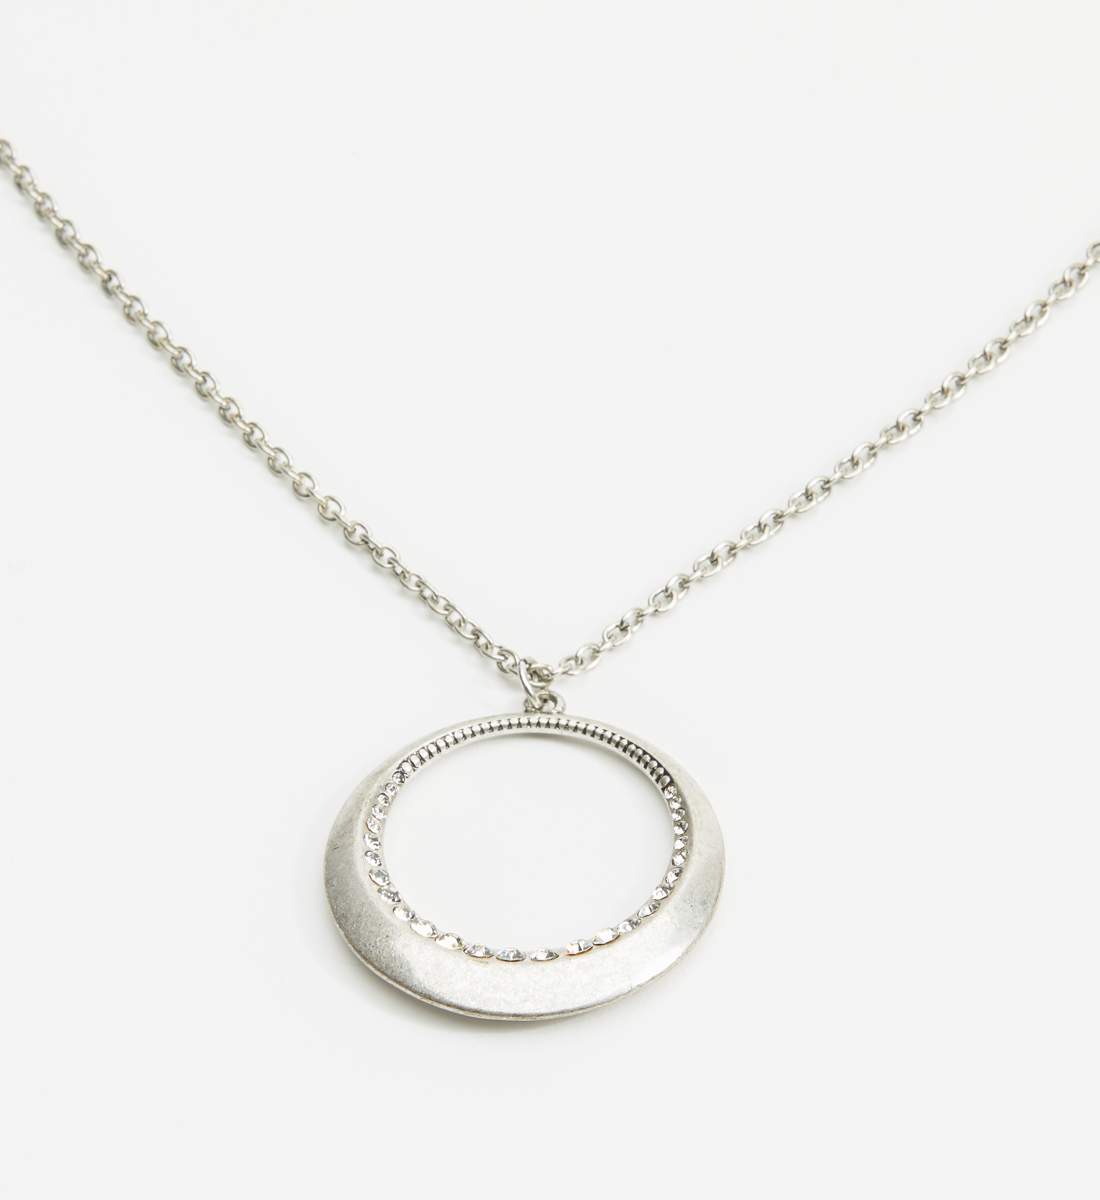 Long Ring Pendant Necklace,Silver Back